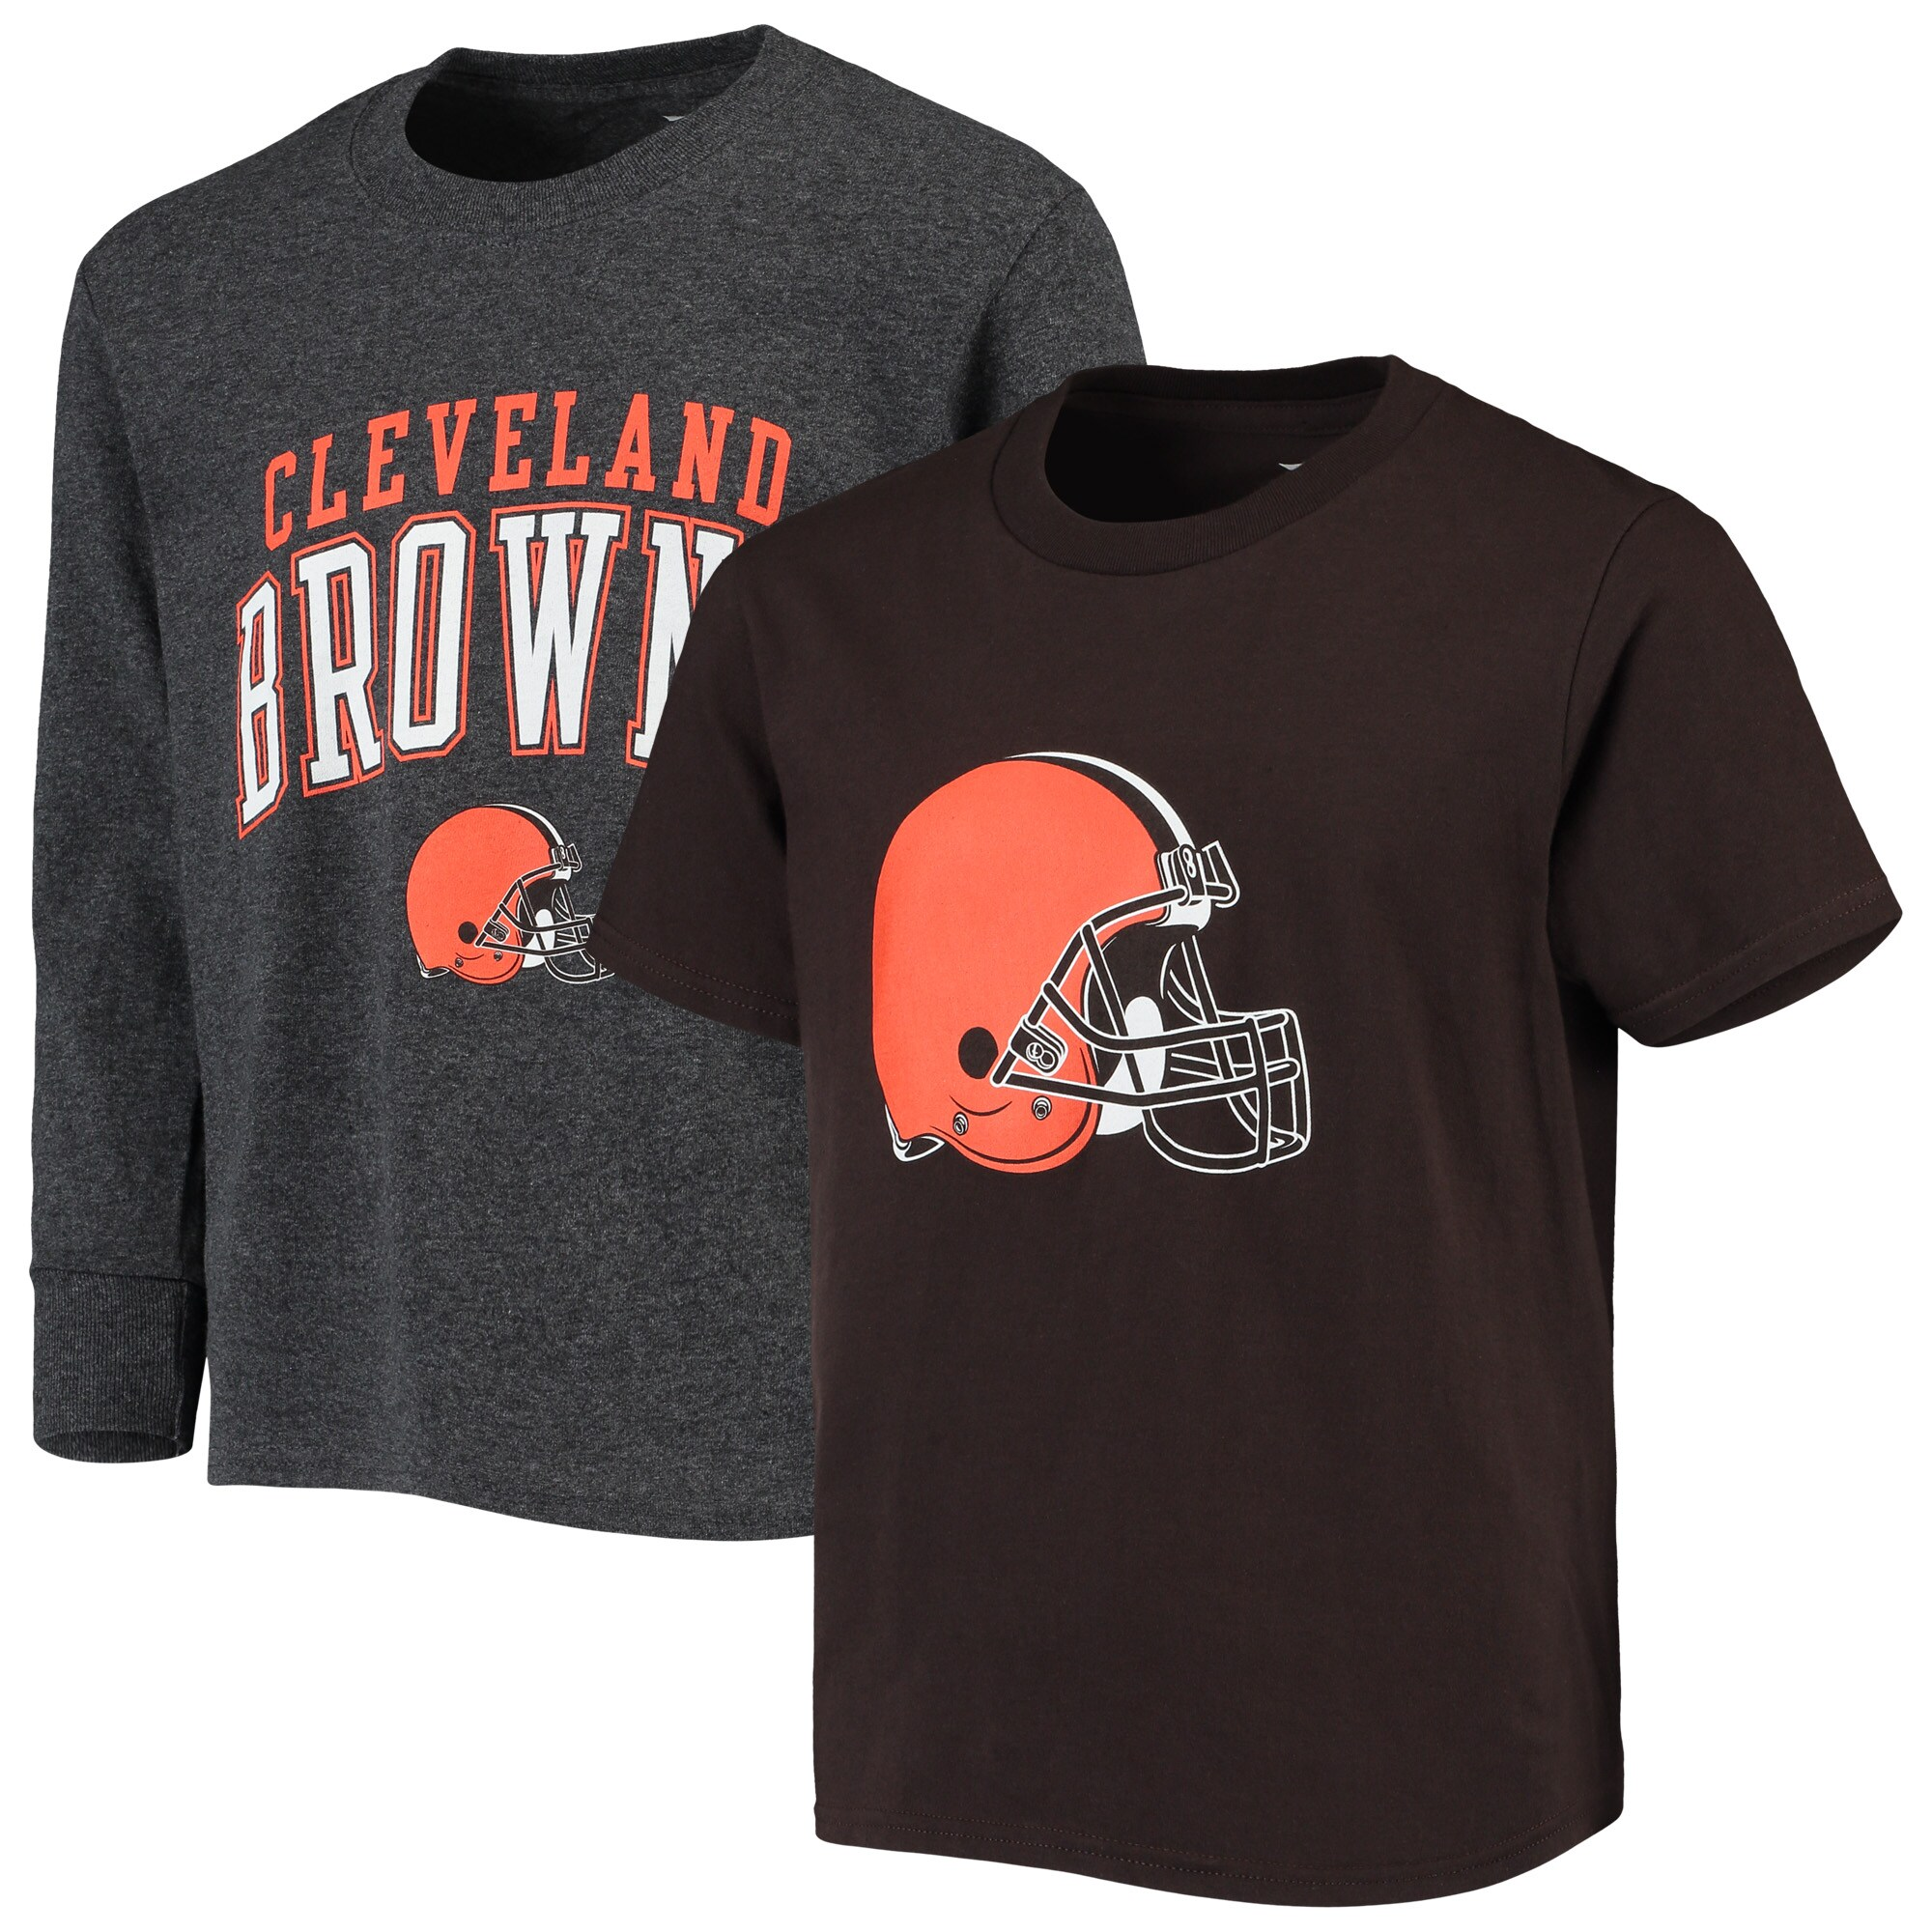 Cleveland Browns NFL Pro Line by Fanatics Branded Youth Short Sleeve & Long Sleeve T-Shirt Combo Pack - Brown/Gray